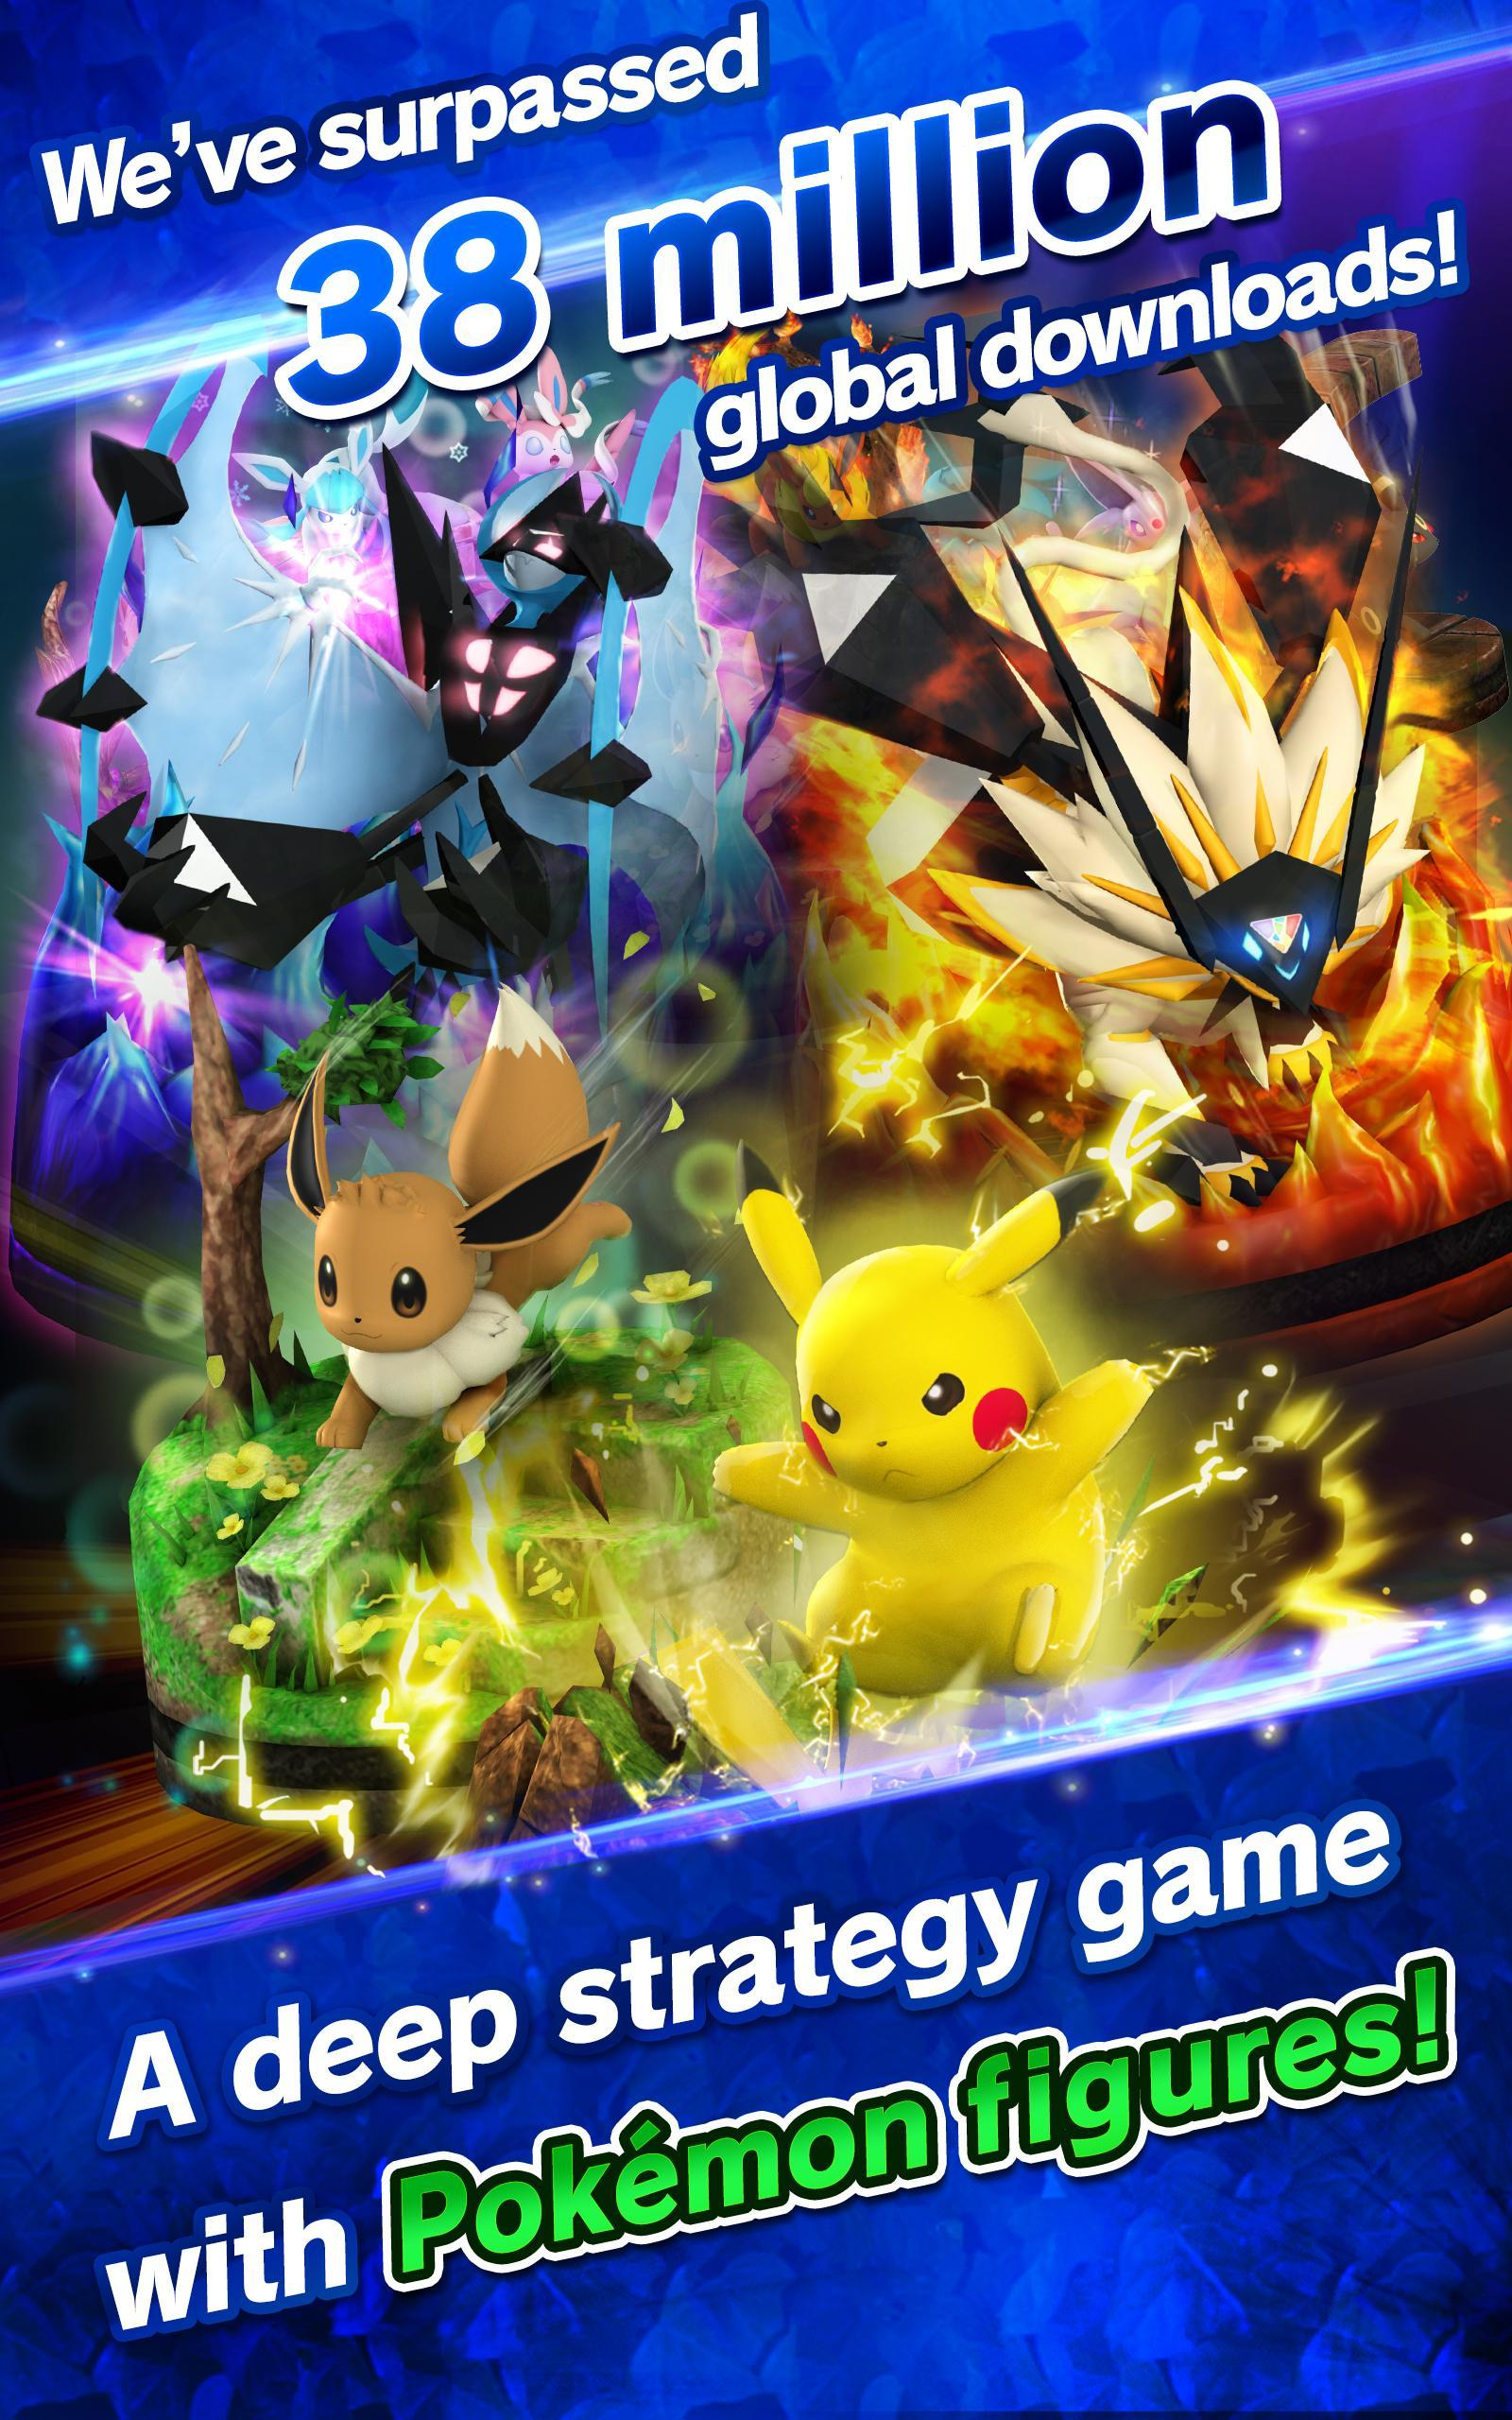 Download Pokémon Duel APK Pokémon Duel